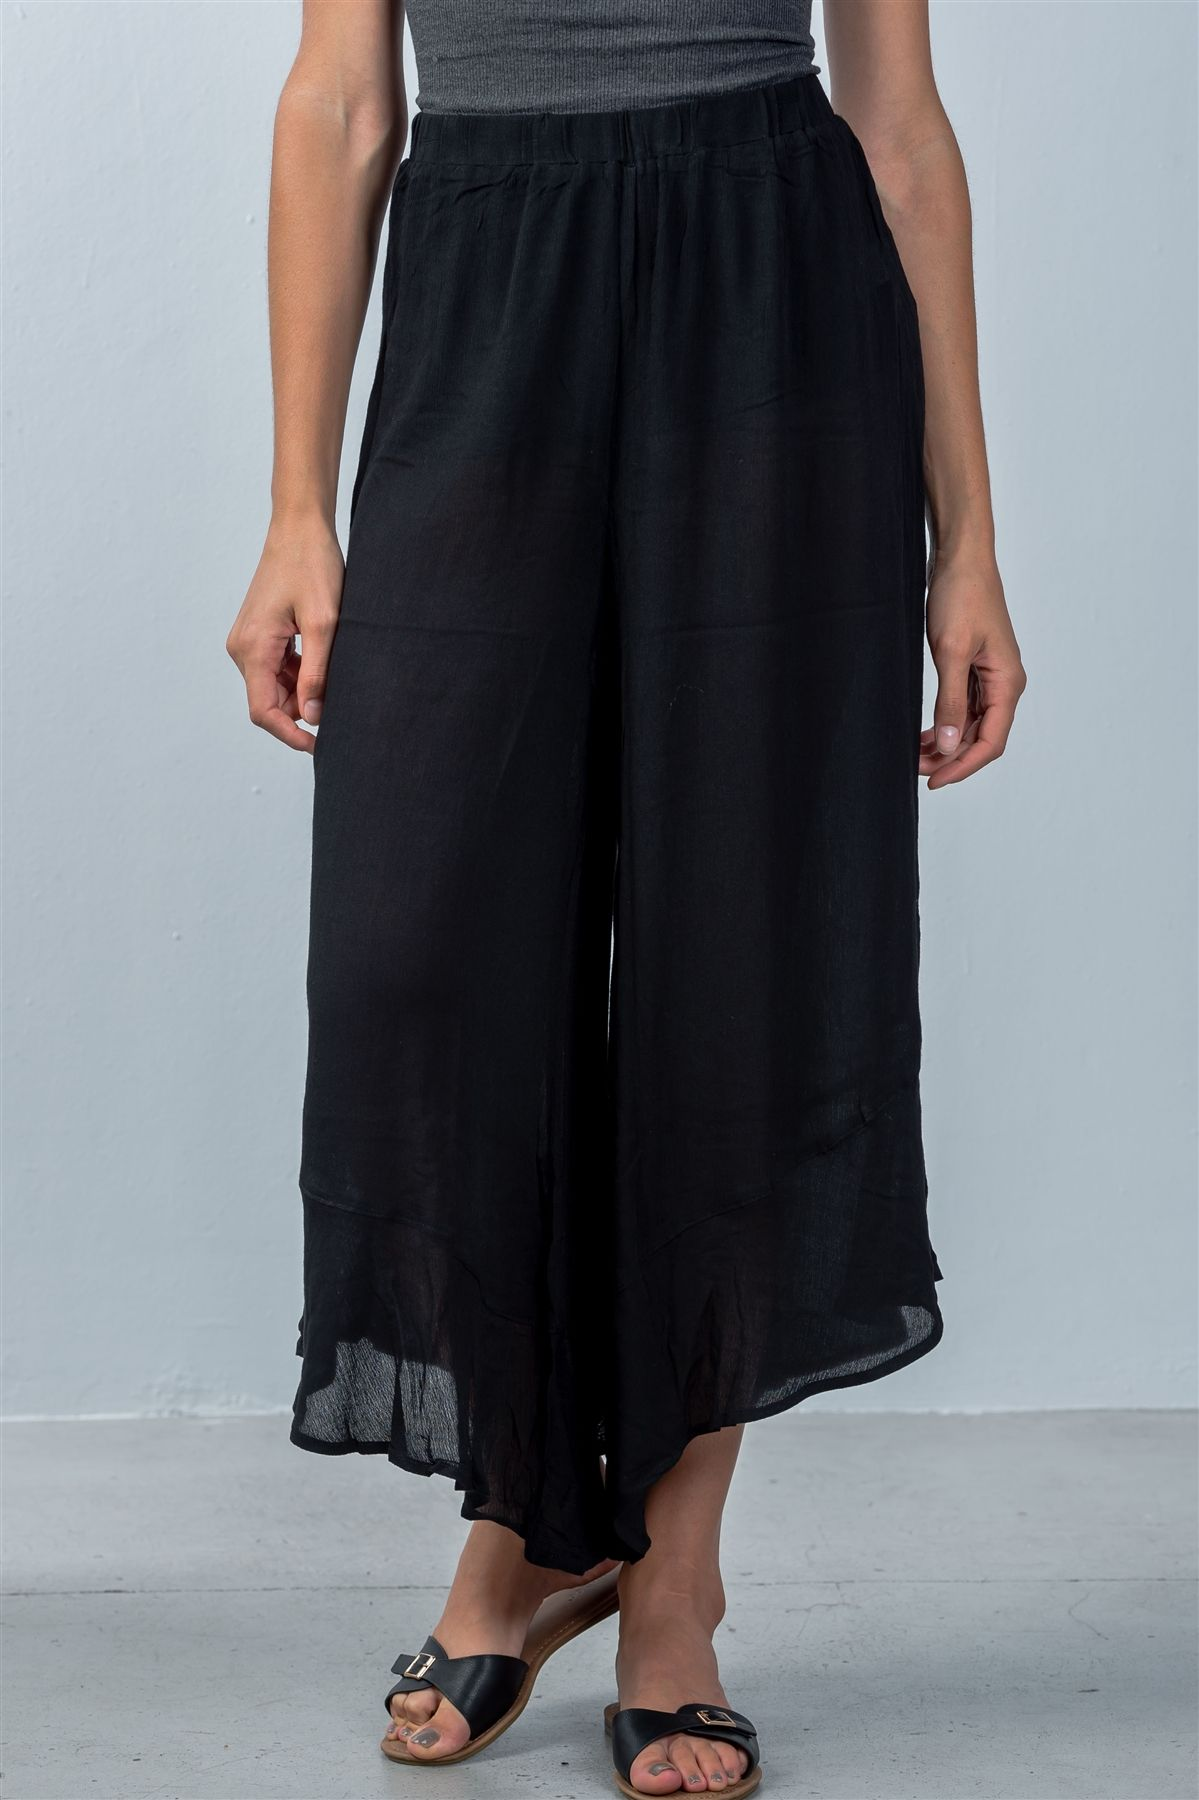 Ladies fashion sheer elastic waistline  black flare wide leg culotte-id.CC35754 - Creole Couture Boutique